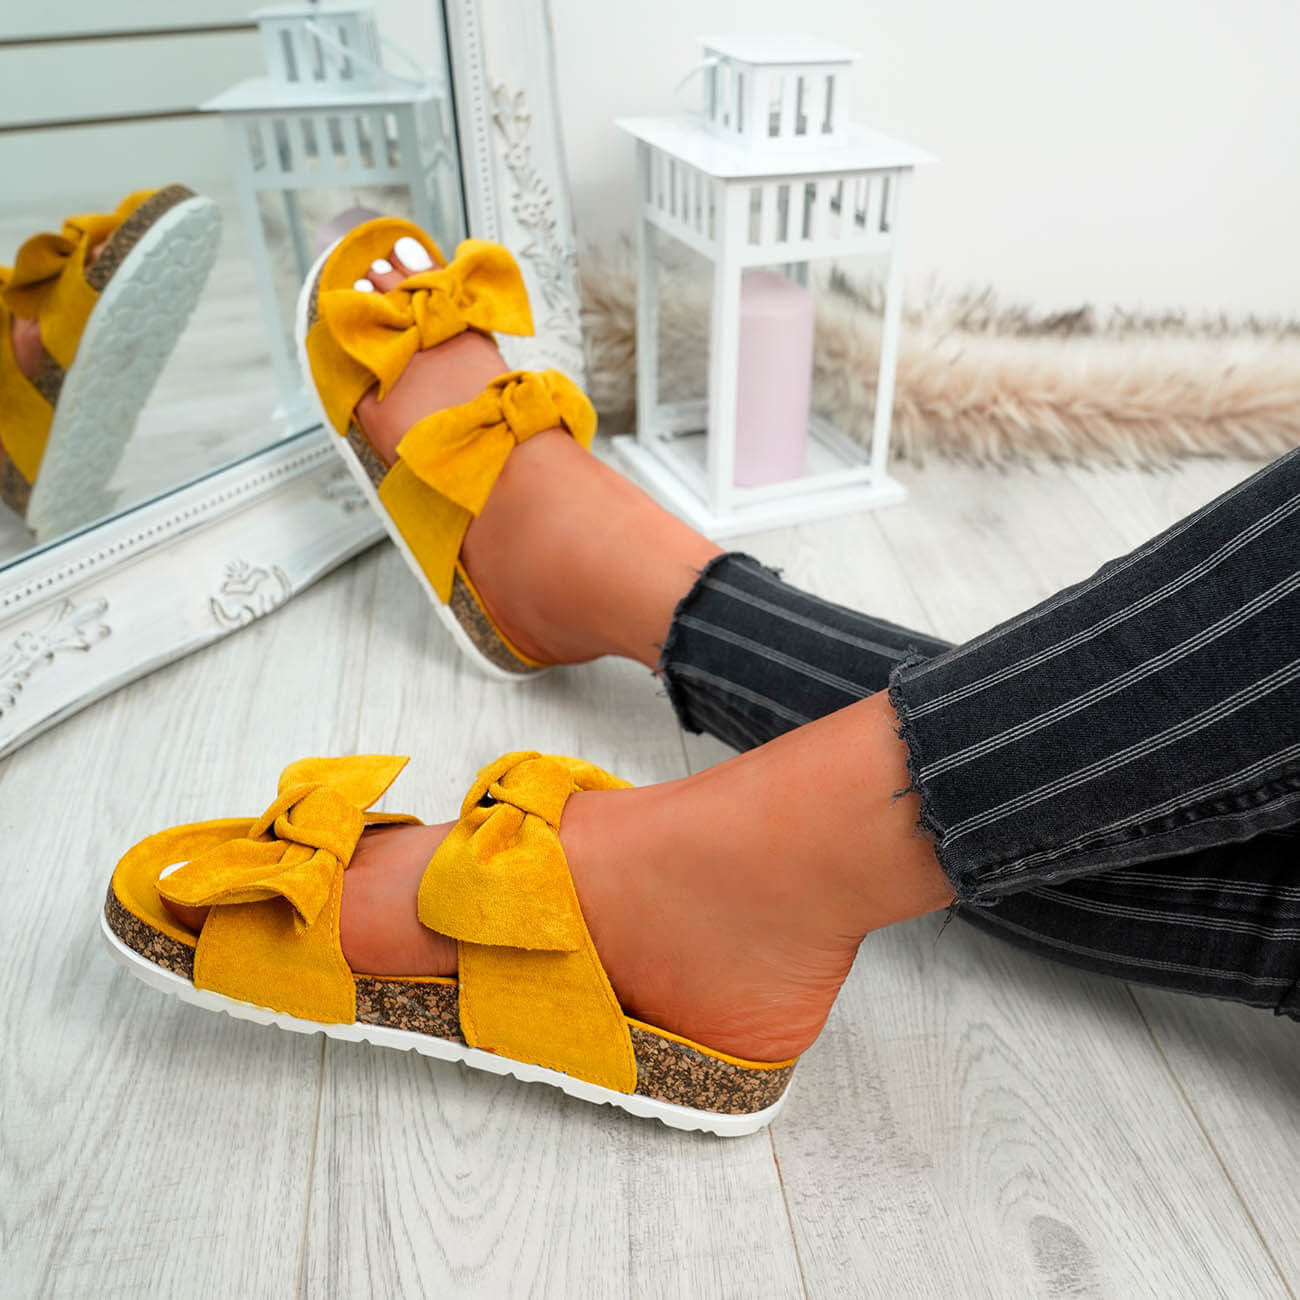 WOMENS-LADIES-PEEP-TOE-SLIP-ON-DOUBLE-BOW-FLAT-SANDALS-PARTY-CLUB-SUMMER-SHOES thumbnail 49